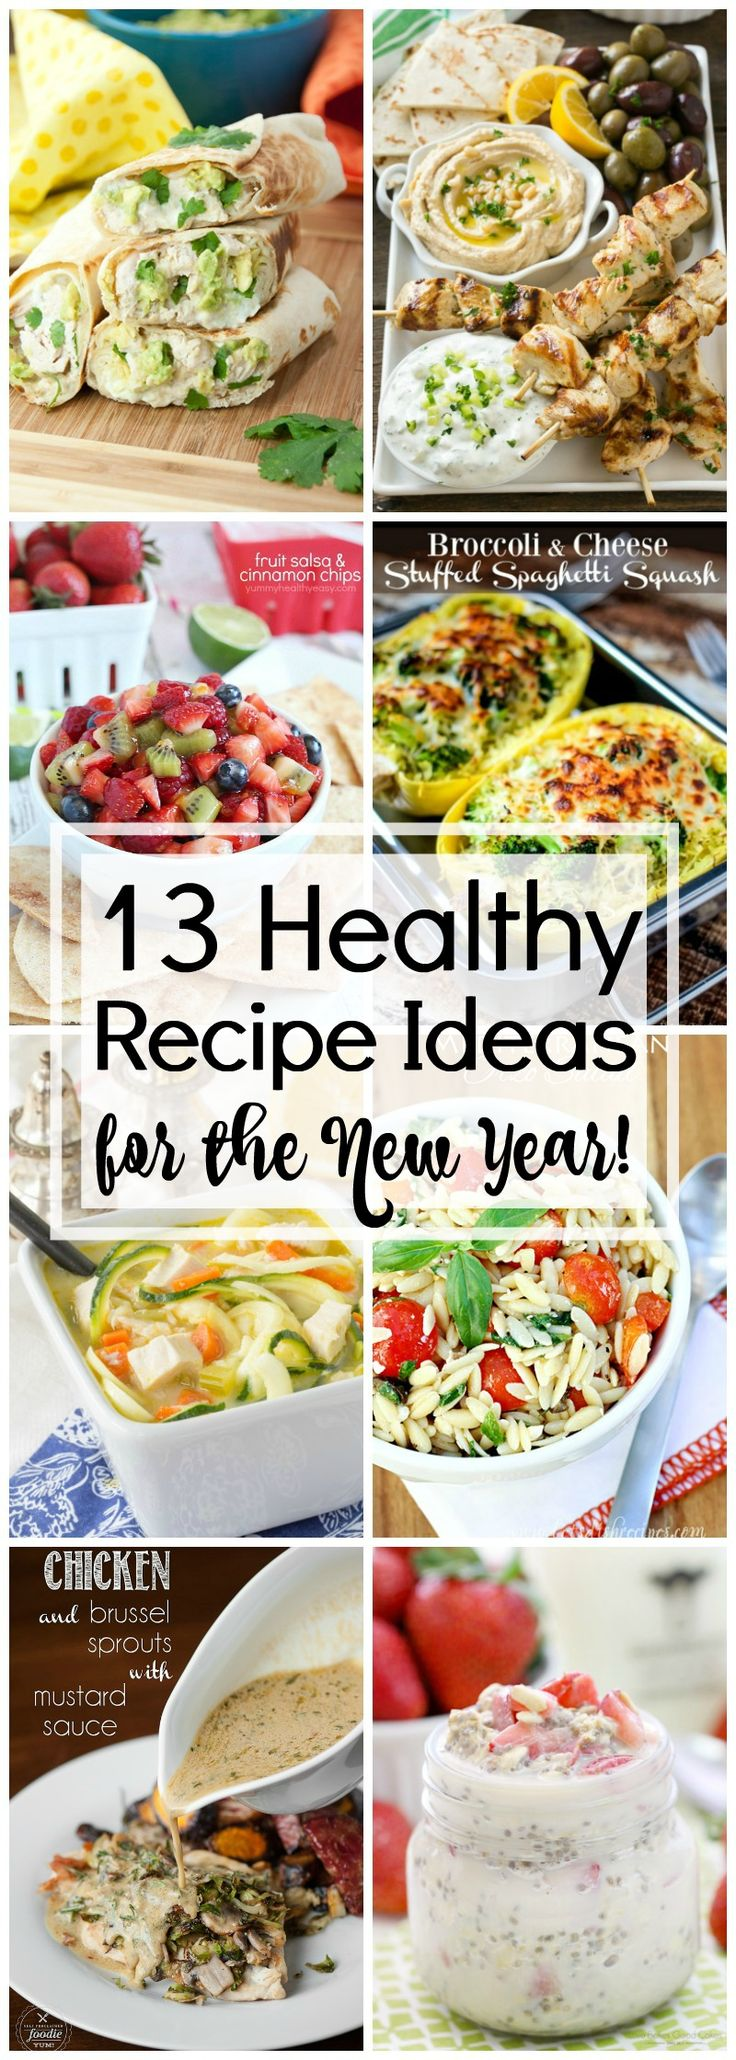 Ready to kickstart your 2017? You need to check out these 13 Healthy Recipe Ideas for the New Year that will have you off to a running start via @KleinworthCo